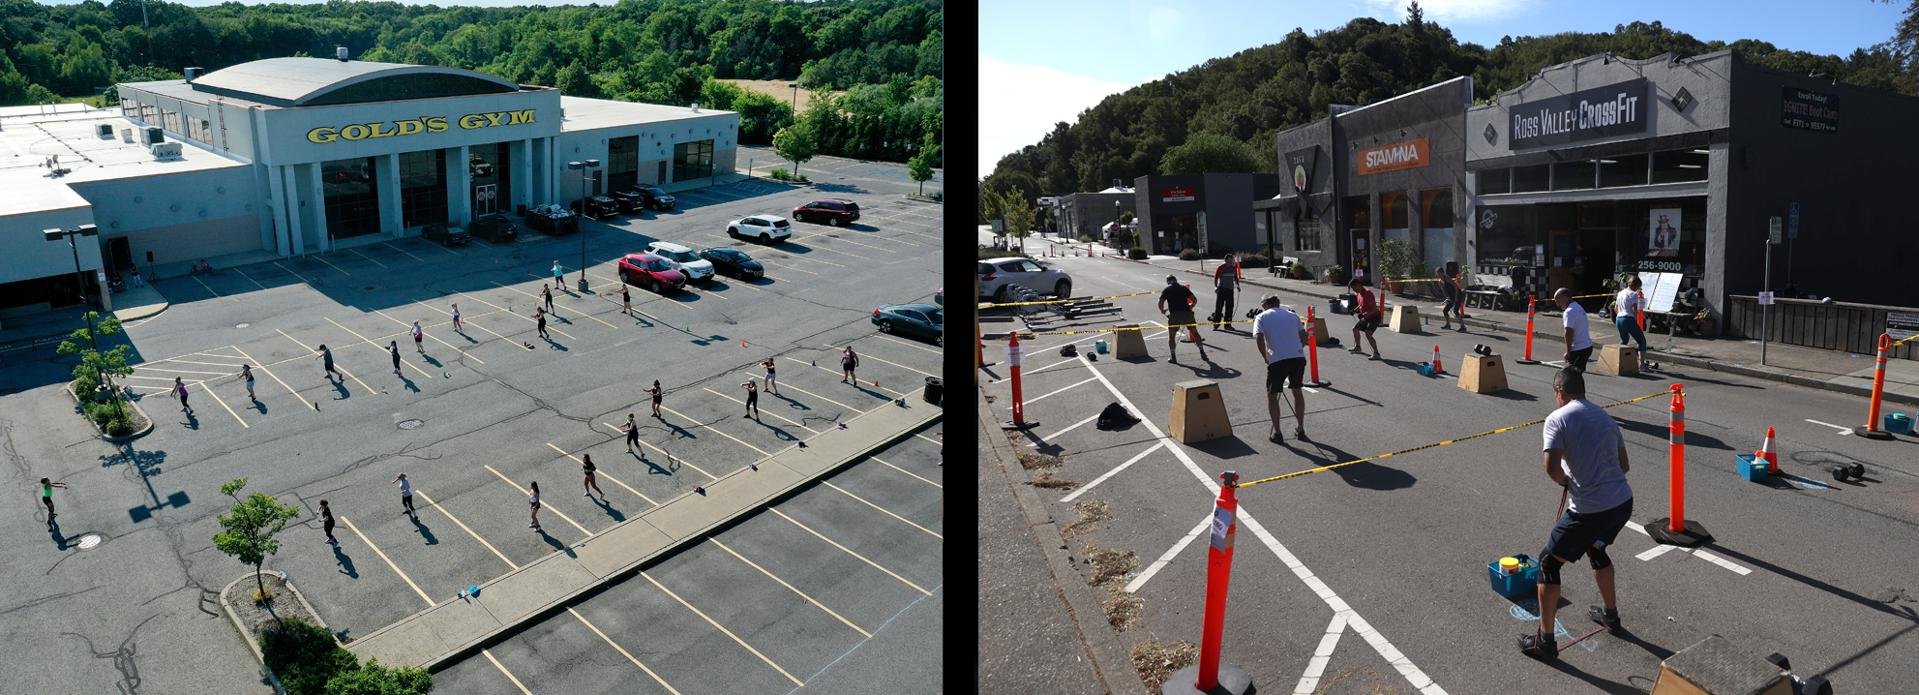 Left; An aerial view of Fitness Instructor Felicia Brunner conducting a Zumba class in the parking lot of Gold's Gym Islip on June 26, 2020 in Islip, New York. New York Governor Andrew Cuomo announced that gyms along with malls and movie theaters, will not be permitted to reopen during phase 4 until New York's Health Department determines if air filtering systems are circulating the coronavirus;  Ross Valley Fitness (formerly Ross Valley Crossfit) members participate in an outdoor socially distanced workout class on June 13, 2020 in San Anselmo, California. Members of Ross Valley Fitness were able to participate in their first in-person workout class since gyms were closed due to the coronavirus COVID-19 pandemic. The town of San Anselmo closed off streets on weekends to allow businesses like gyms and restaurants to have more outdoor space to allow for their customers to have more space to socially distance.